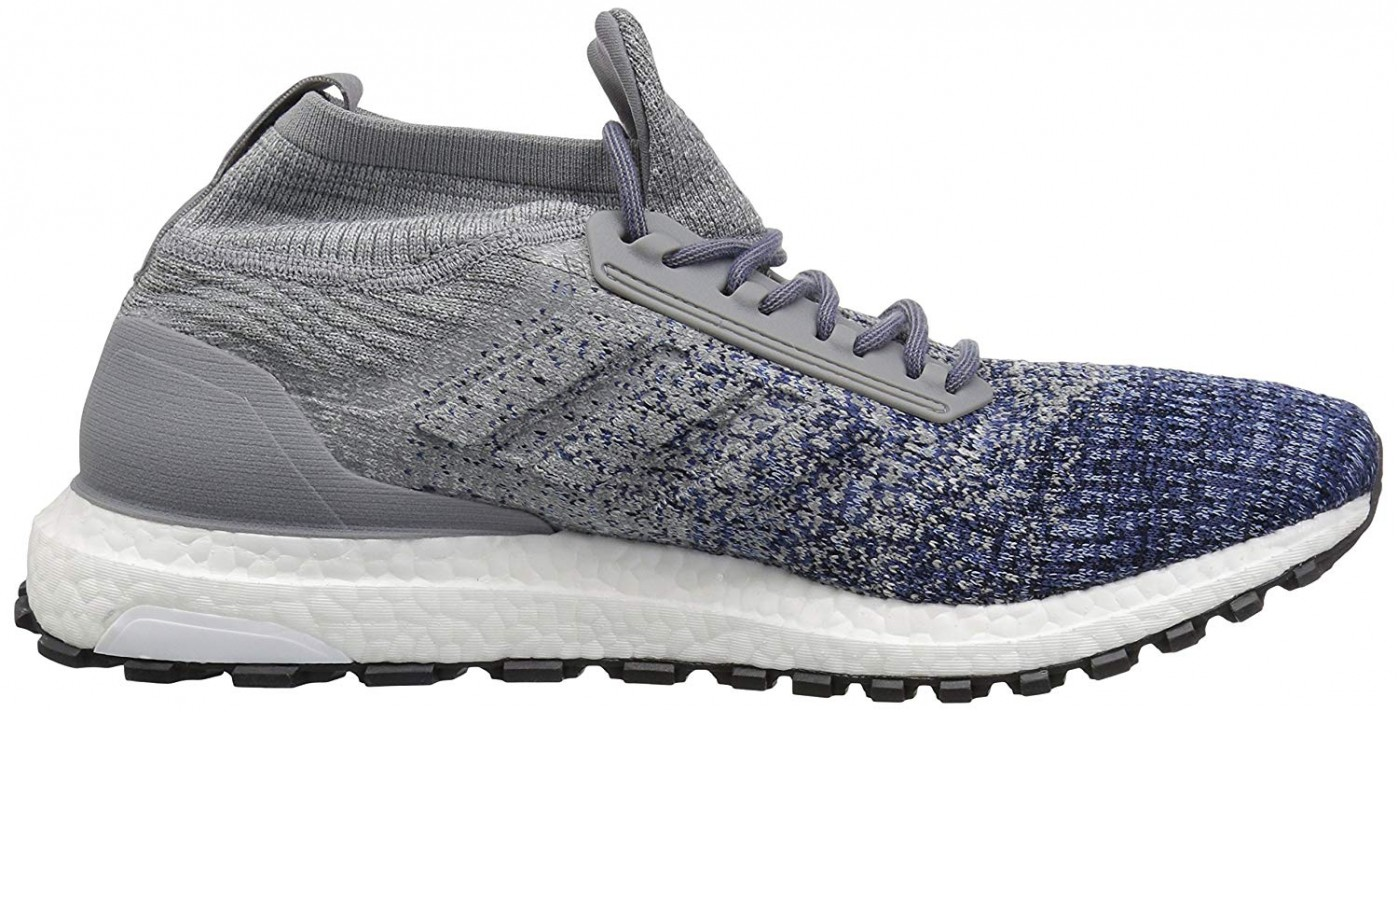 64c7c2e8e237a A perspective image of the Adidas Ultraboost All Terrains ...